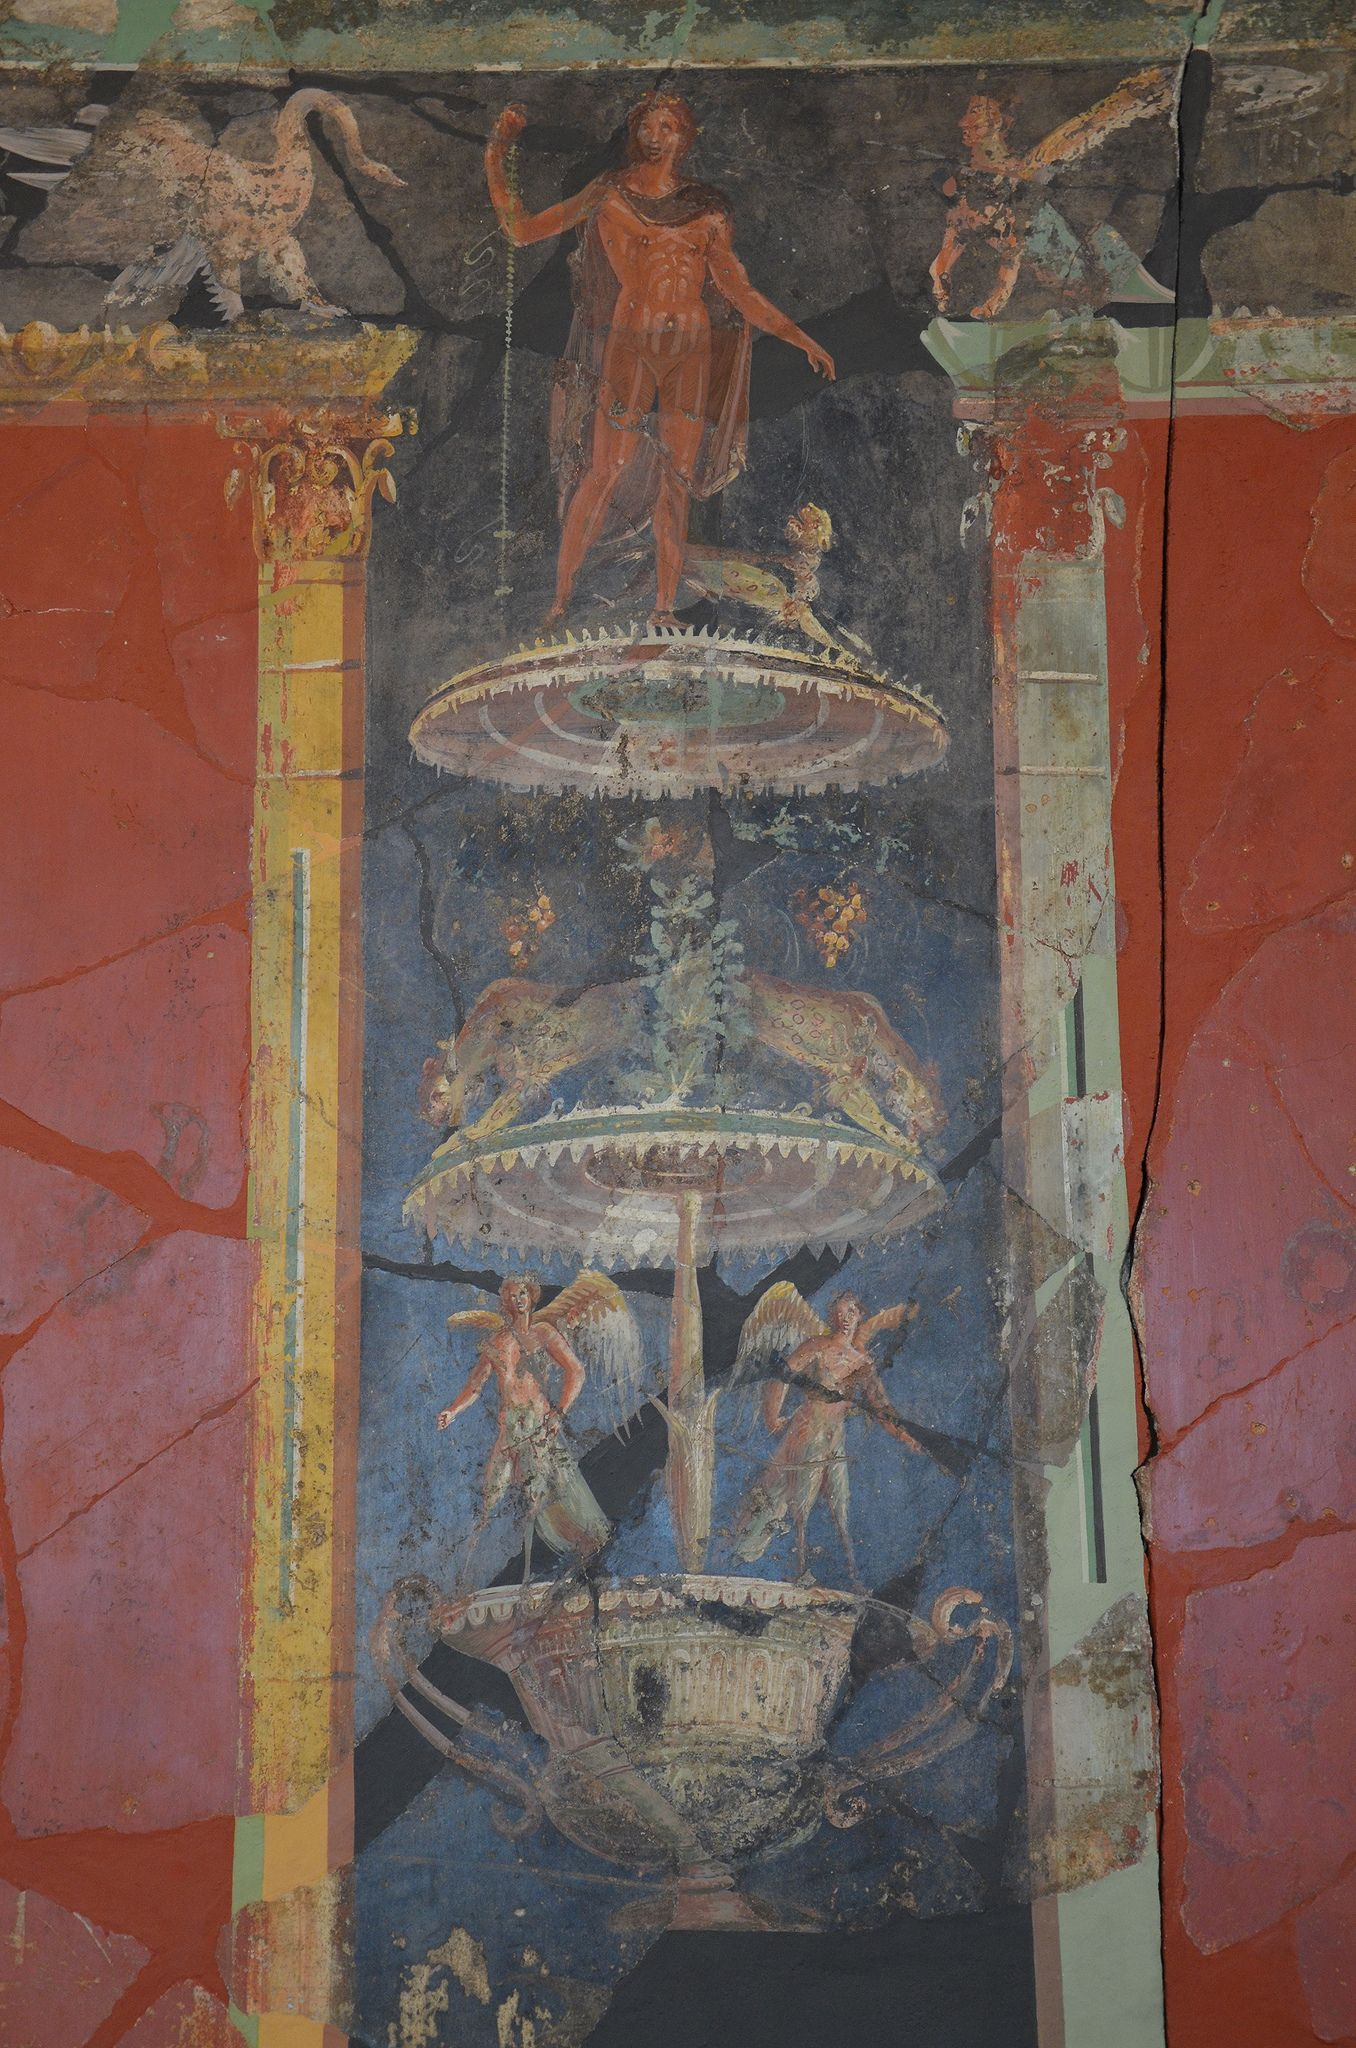 Wall painting with Dionysian scenes from a luxurious Roman